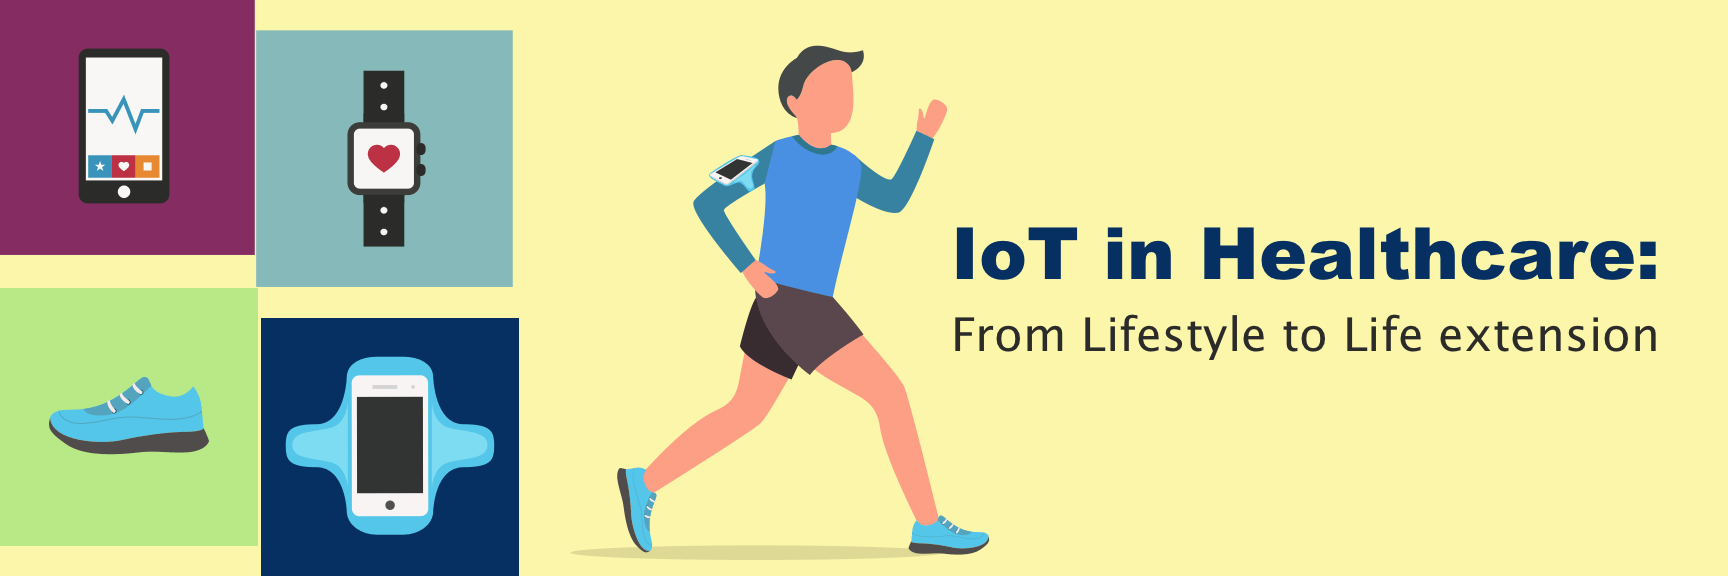 internet of things ( IOT ) - A revolution in healthcare